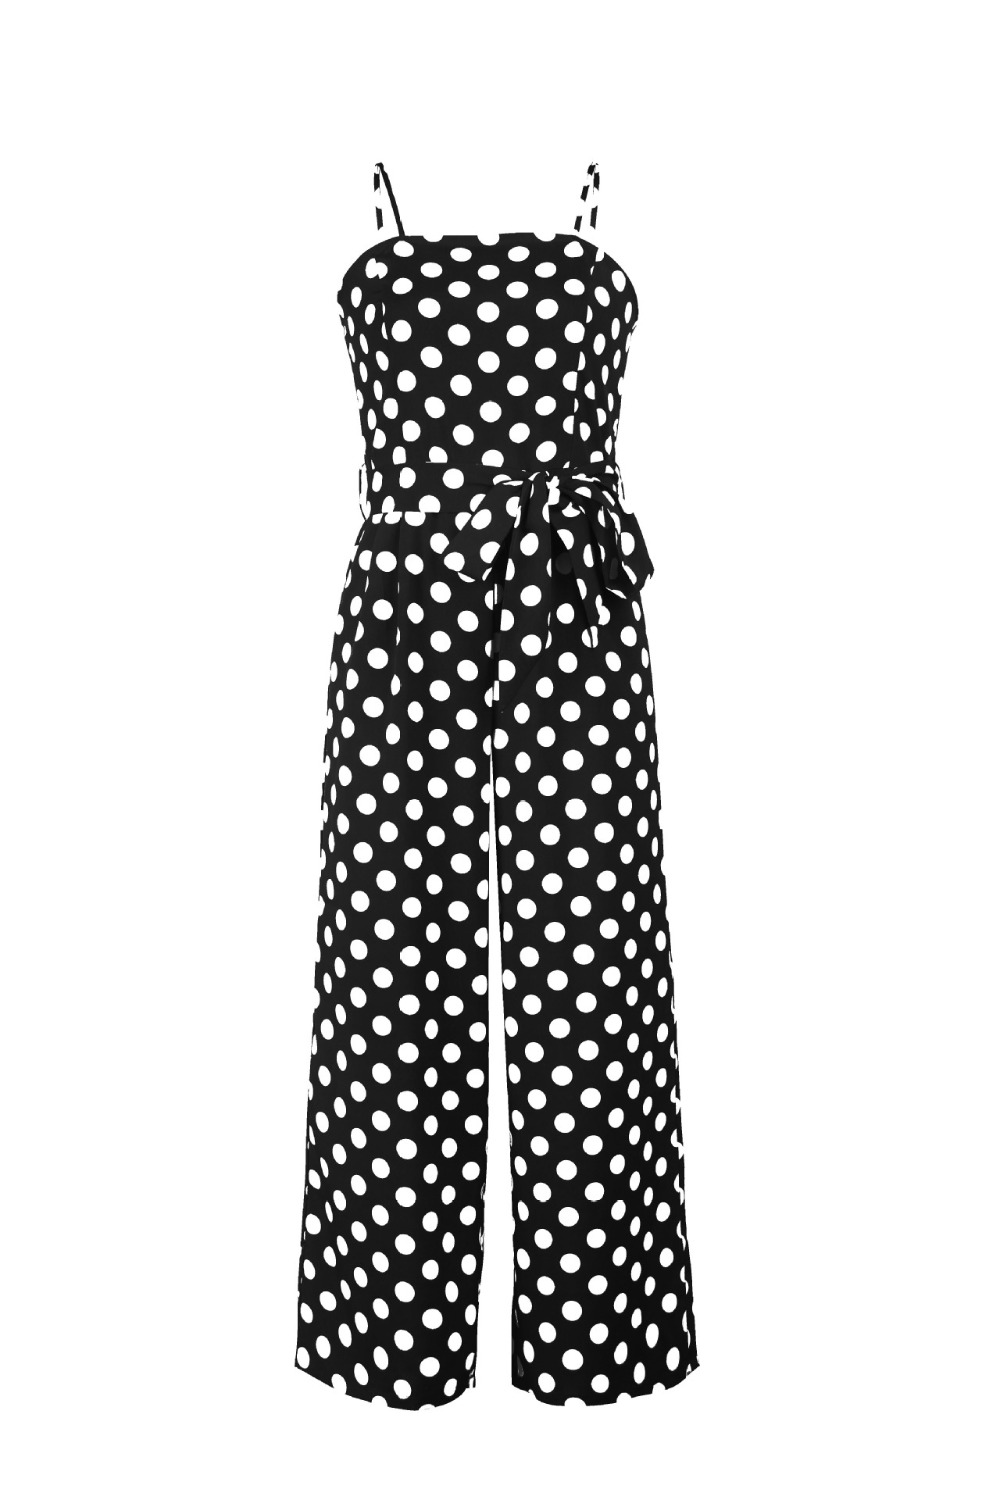 HTB14CsDbcfrK1Rjy0Fmq6xhEXXak - Women Rompers summer long pants elegant strap woman jumpsuits polka dot plus size jumpsuit off shoulder overalls for womens